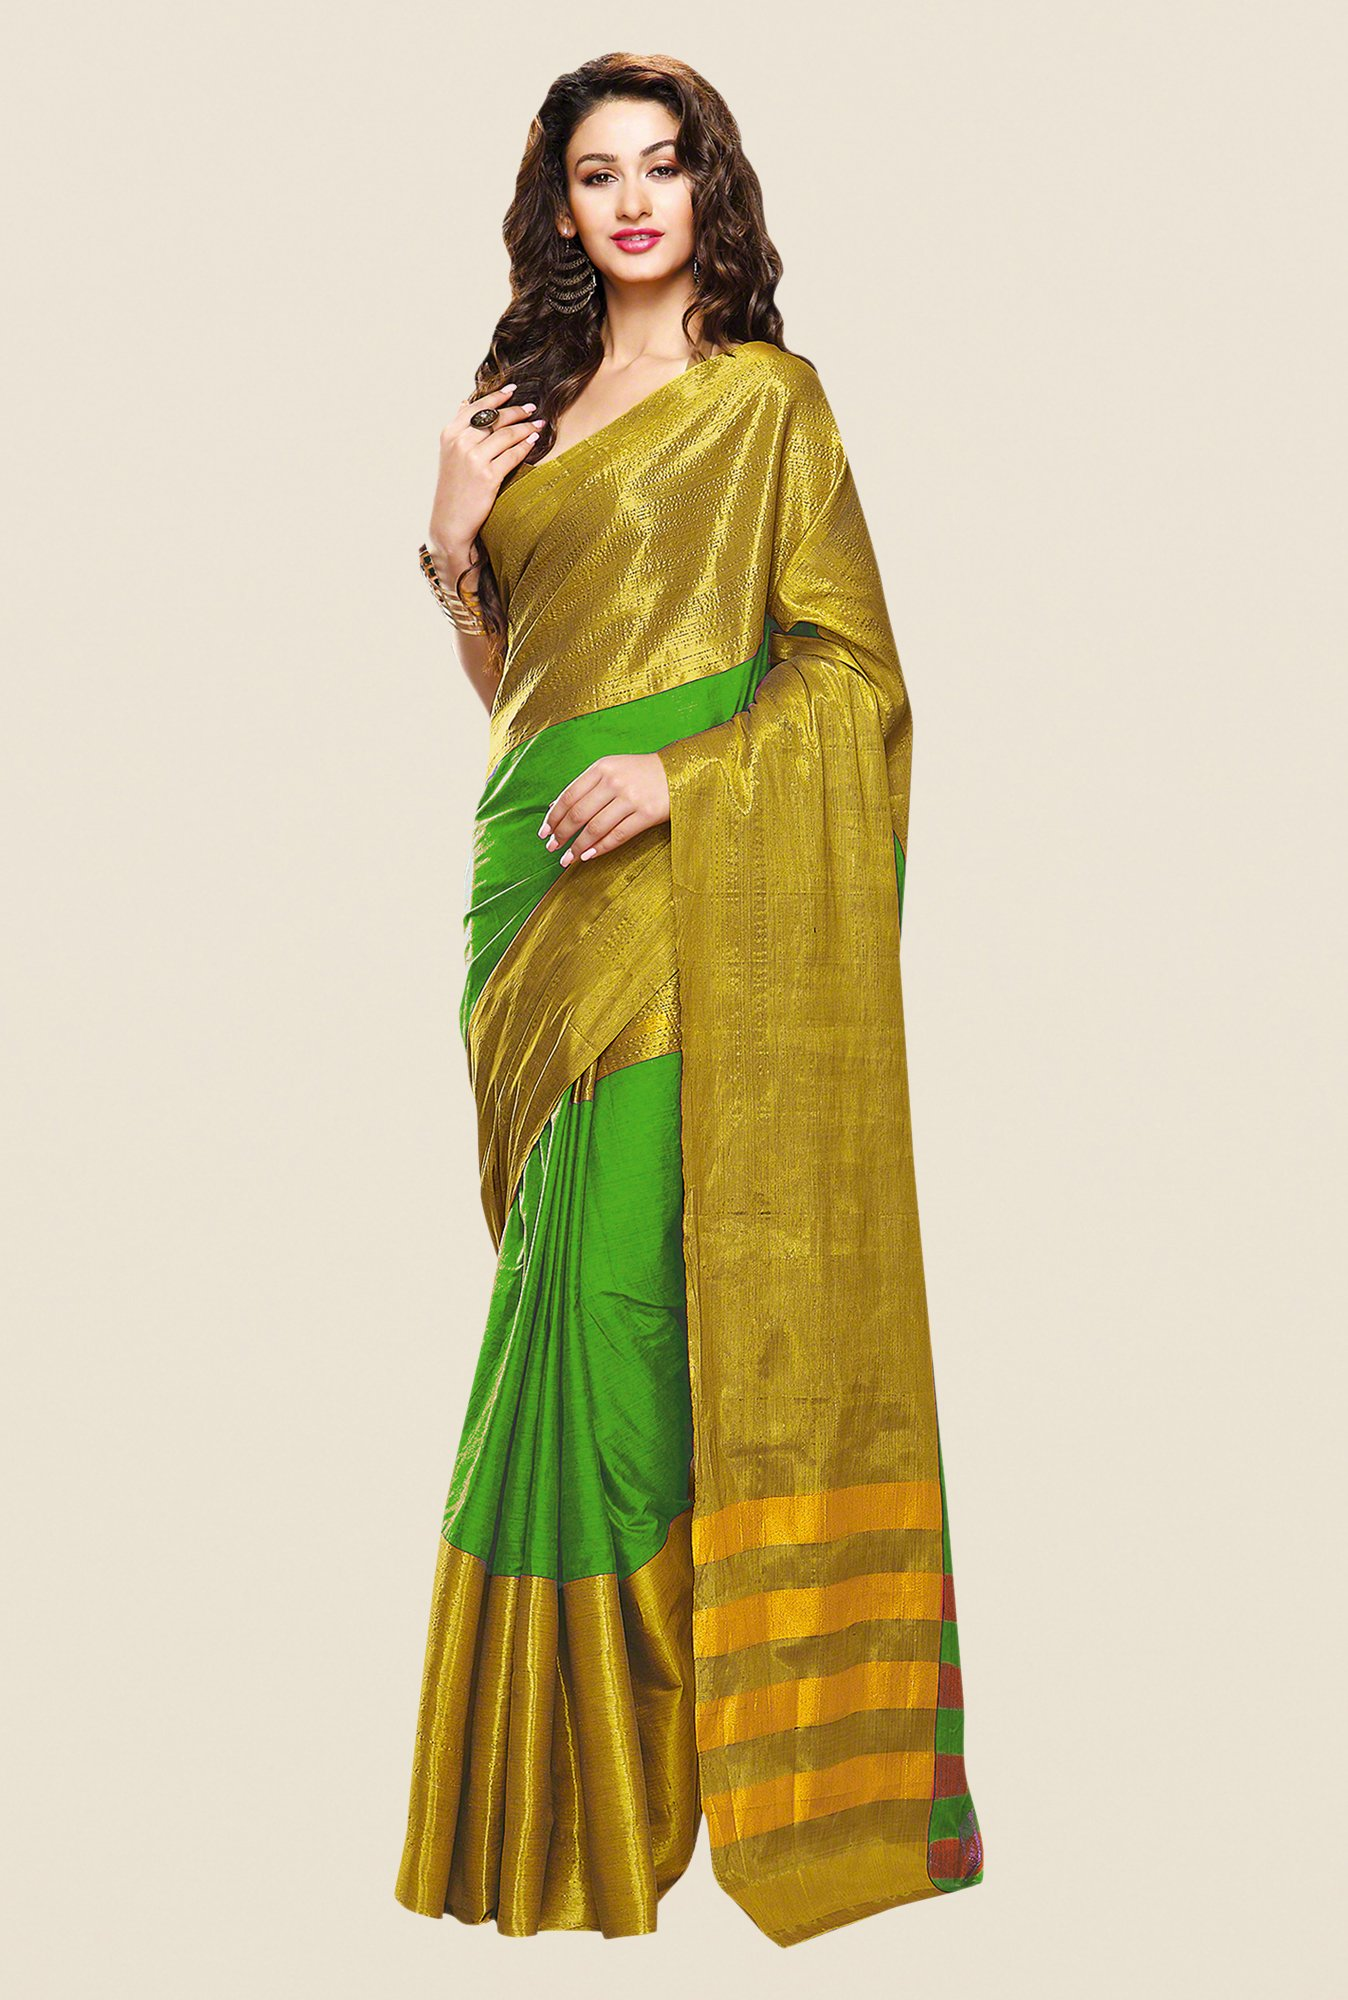 Shonaya Green & Gold Cotton Silk Printed Saree